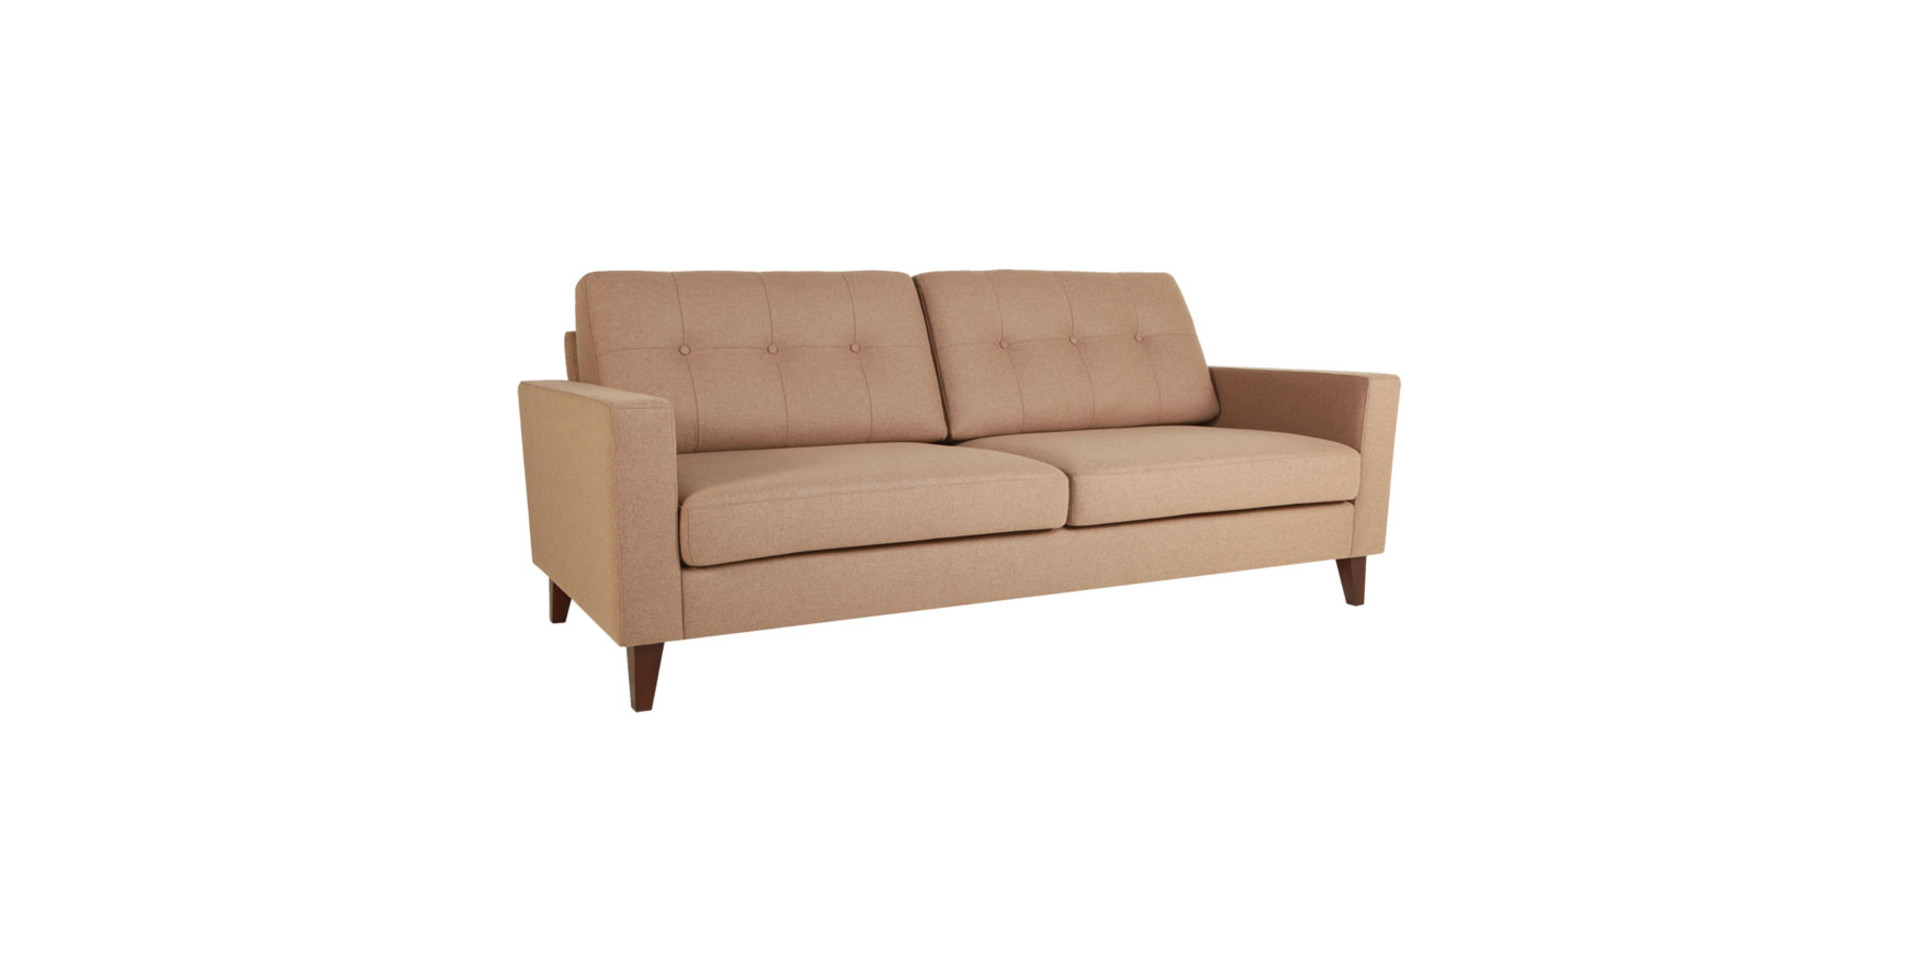 sits-giorgio-canape-3seater_panno1026_light_brown_2_0